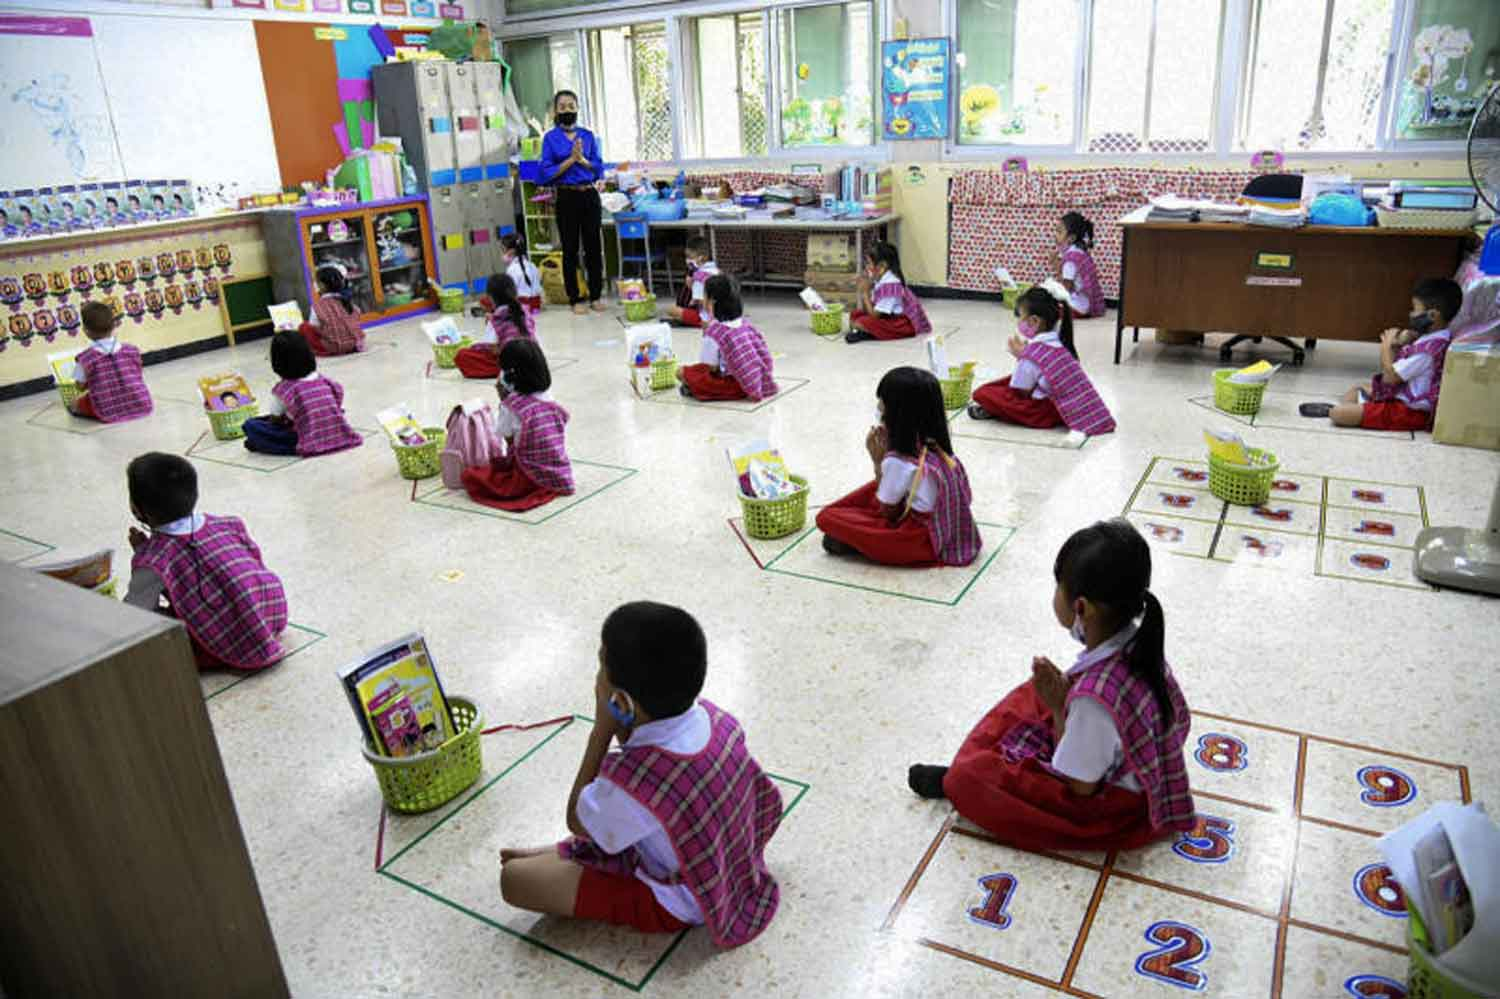 Young students practise social distancing in a classroom at Thung Song Hong School in the Lak Si district of Bangkok last week. The government reported three new Covid-19 cases on Tuesday. (Photo by Bangkok Metropolitan Administration)